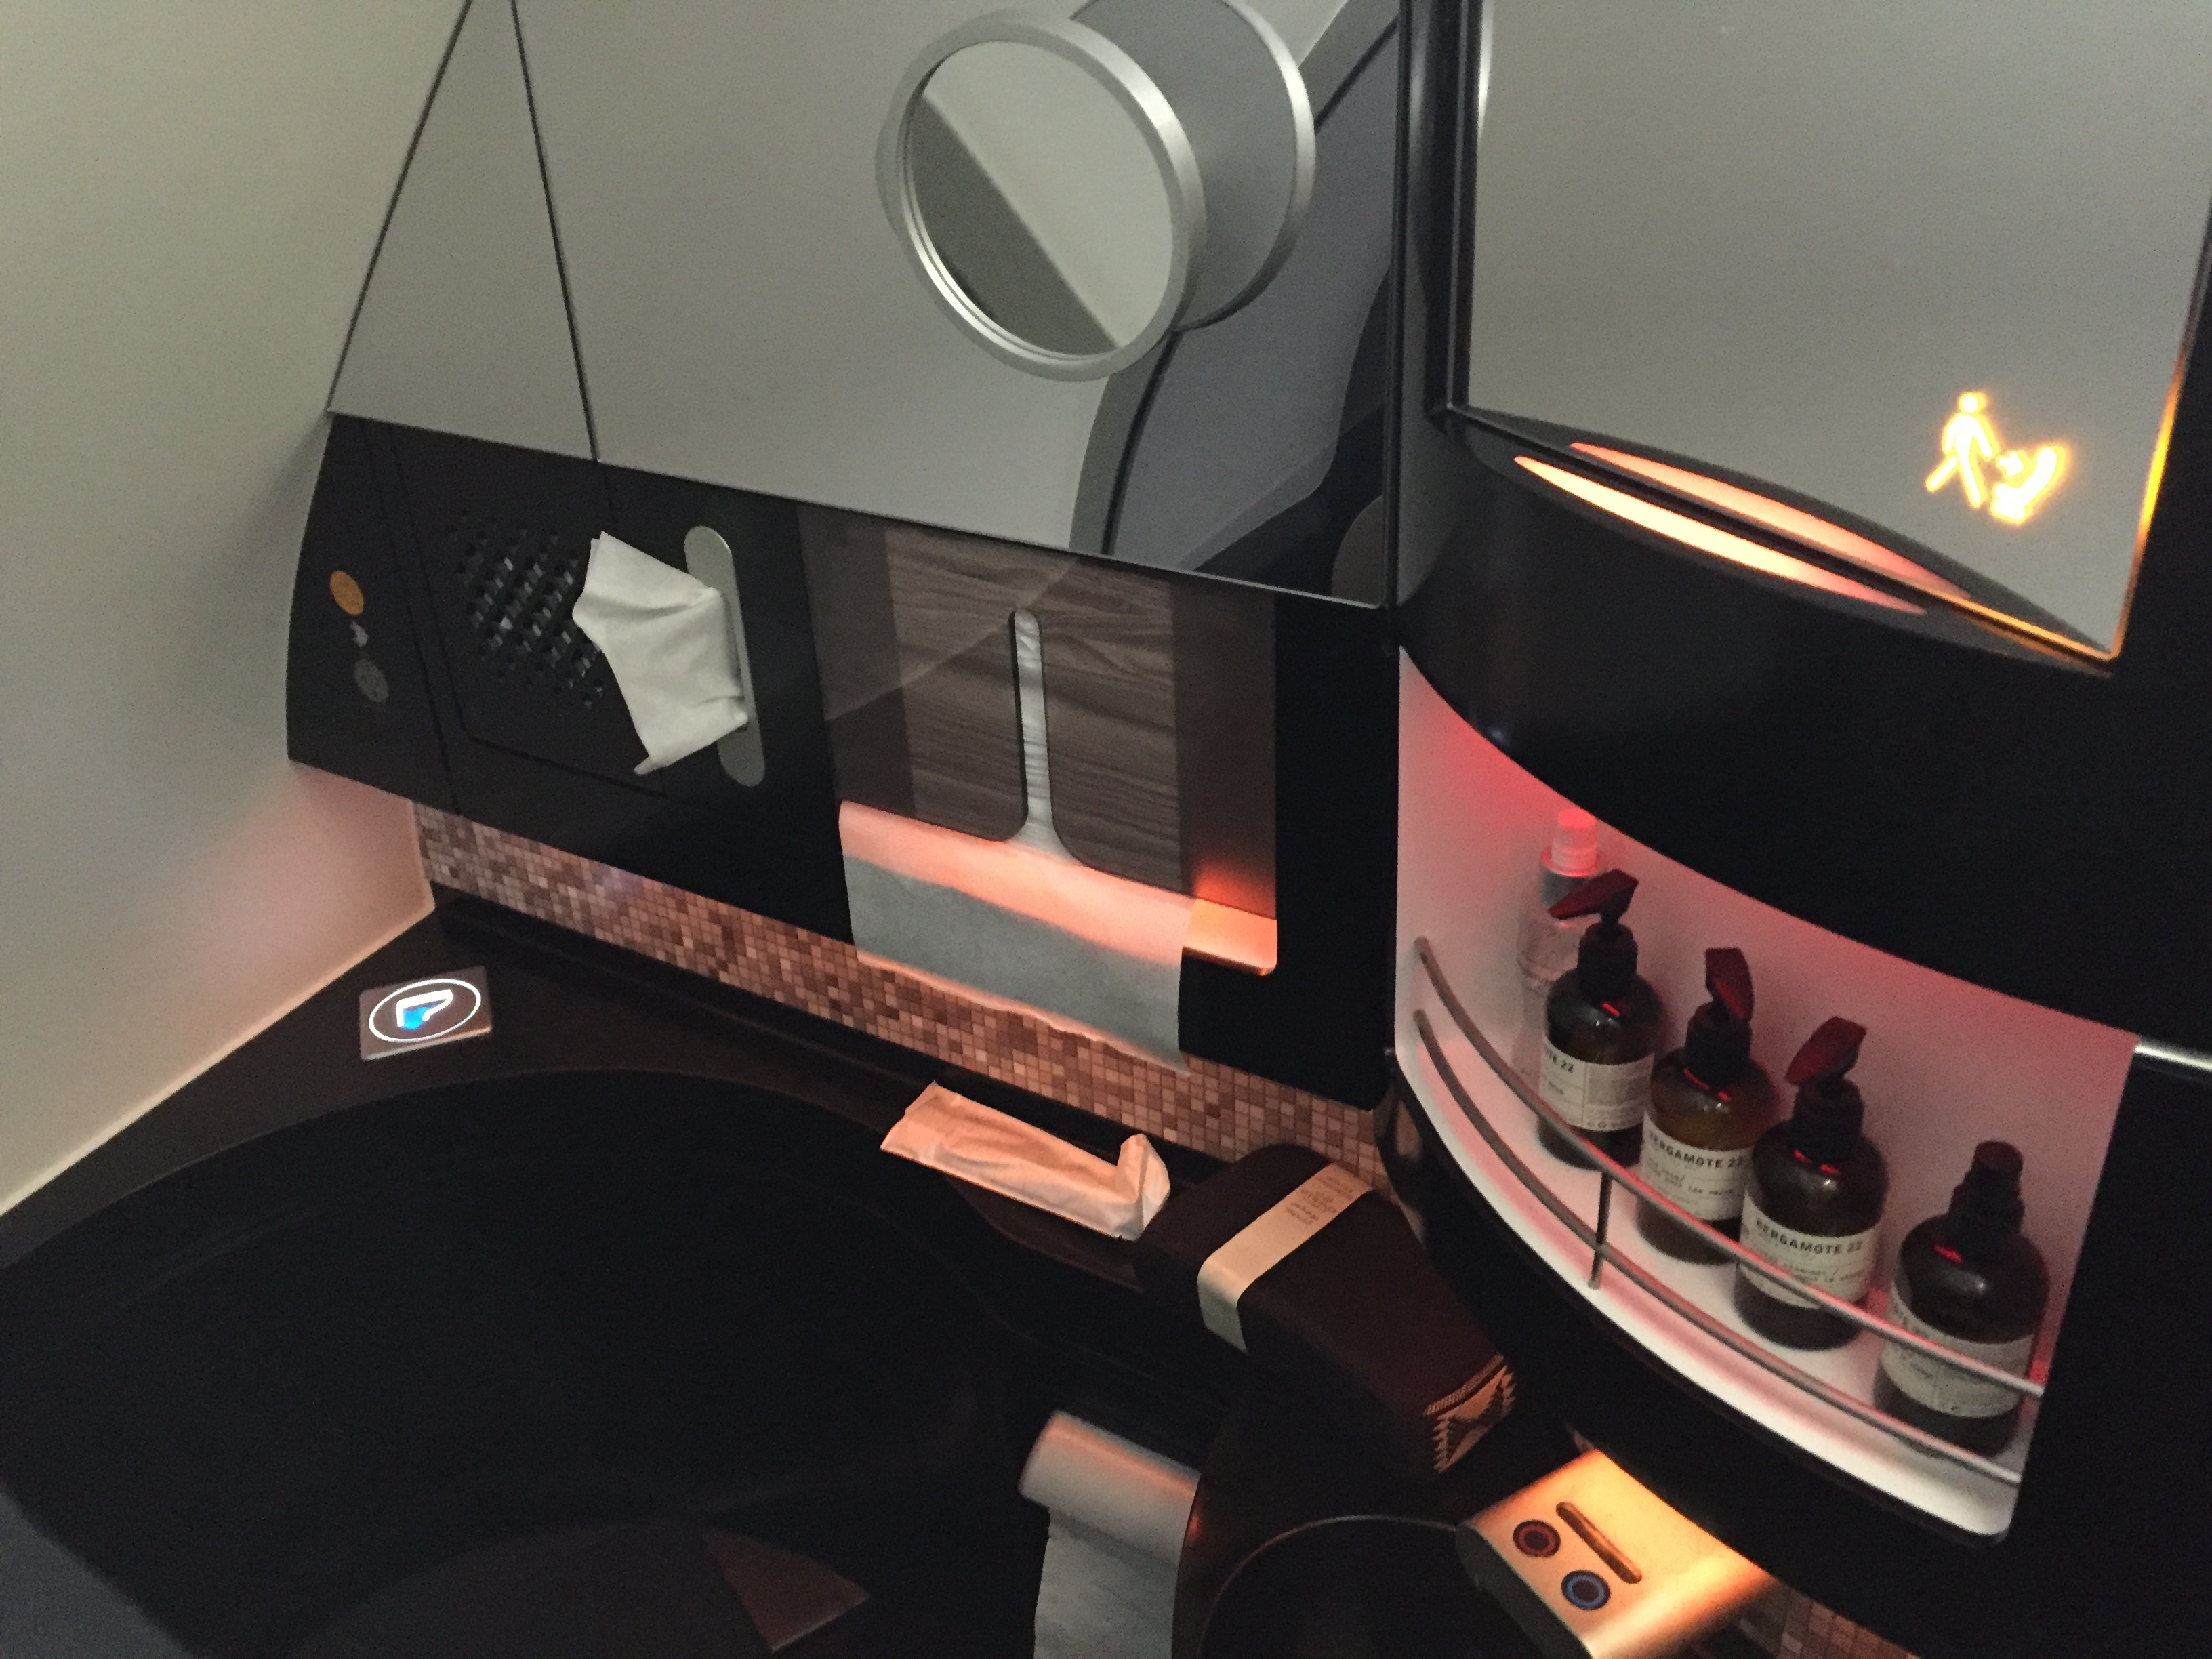 Etihad First Class A380 bathroom amenities